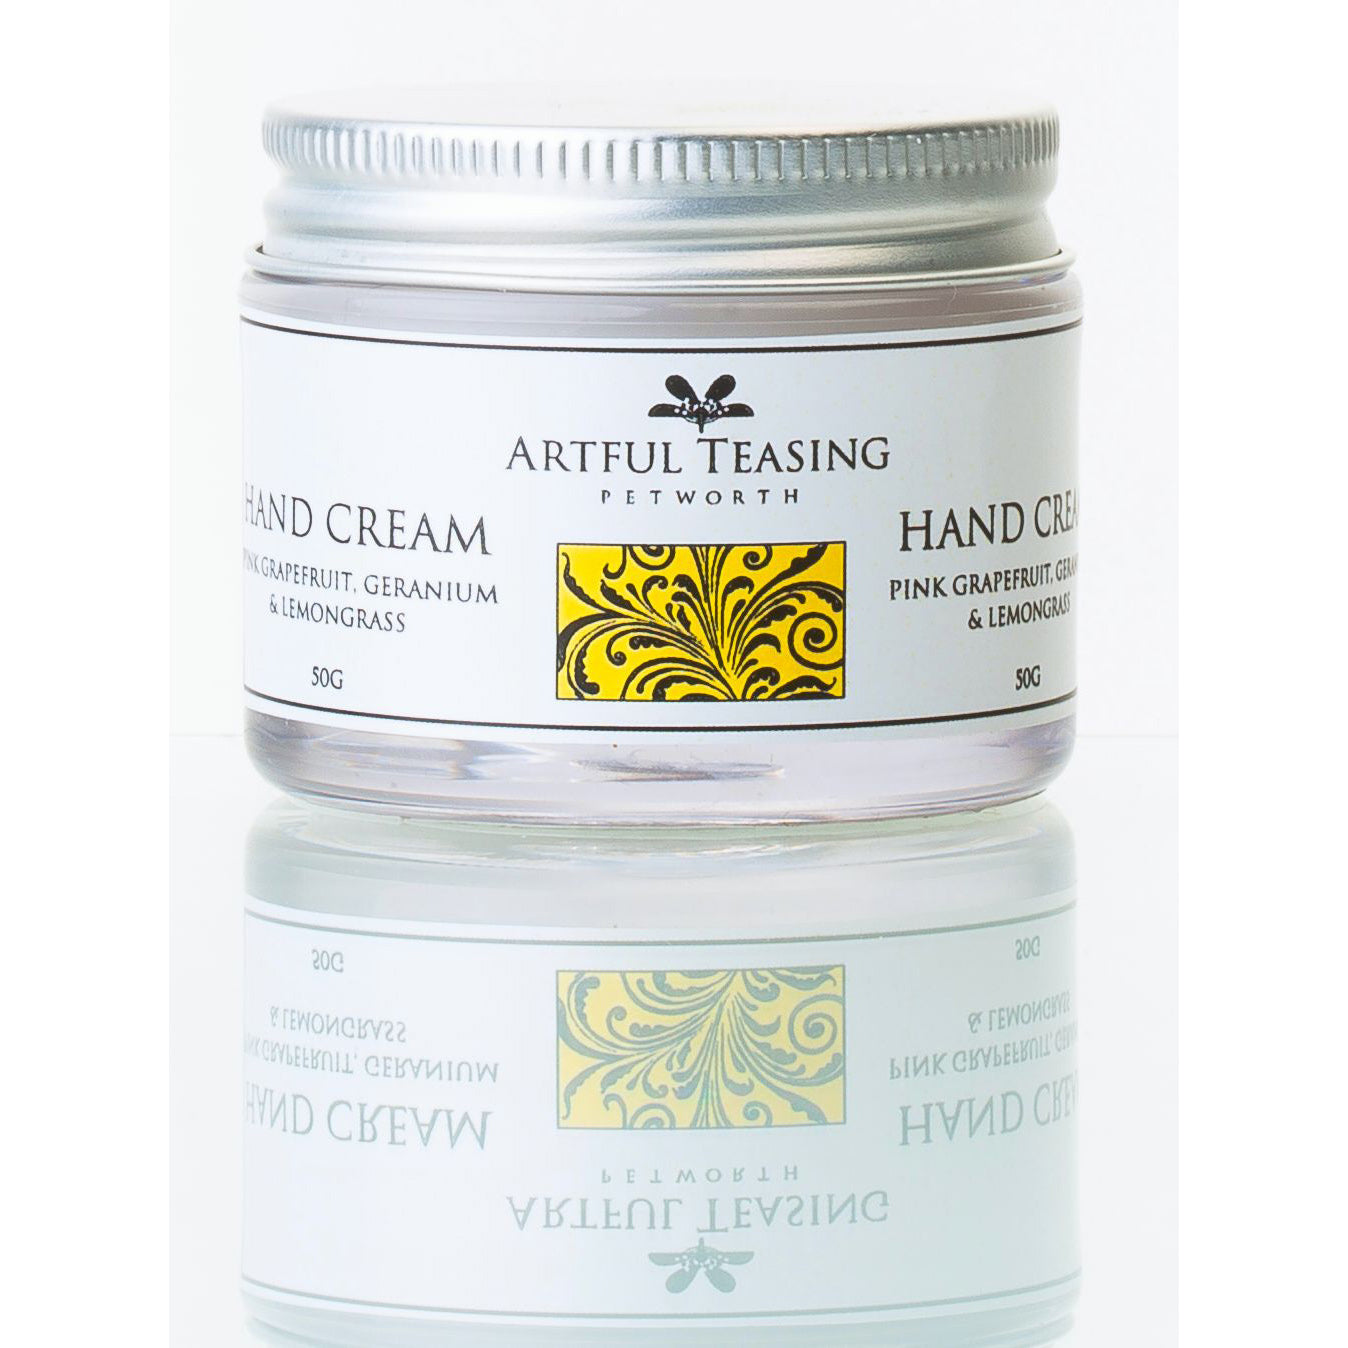 Pink Grapefruit, Geranium & Lemongrass Hand Cream 50g